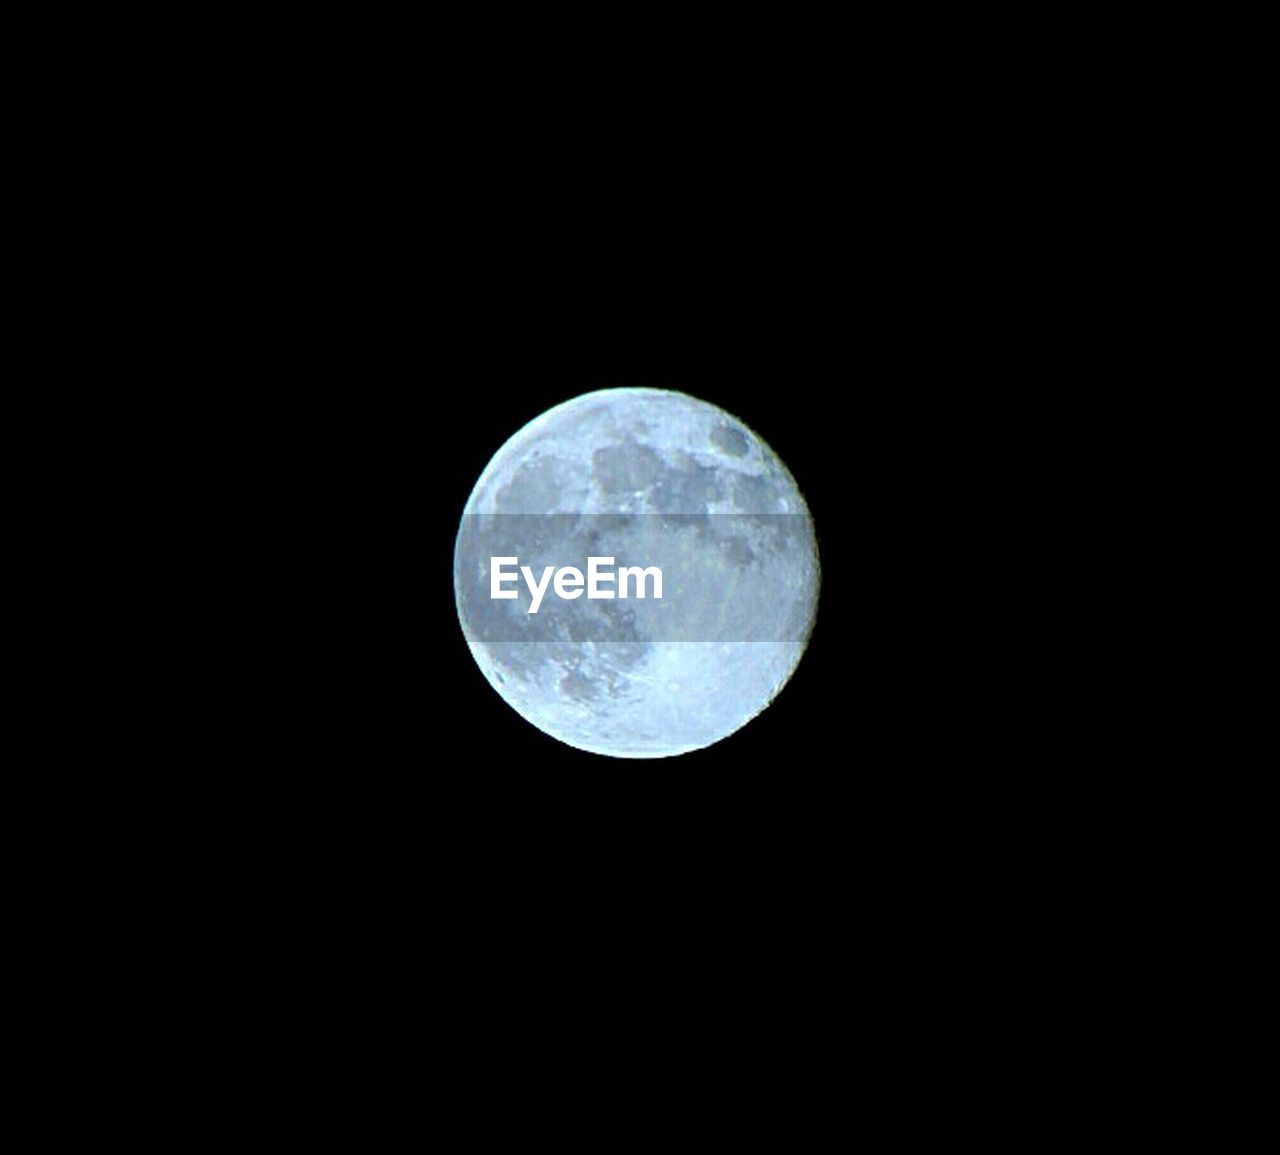 moon, night, moon surface, full moon, astronomy, nature, no people, outdoors, scenics, space, low angle view, beauty in nature, sky, close-up, satellite view